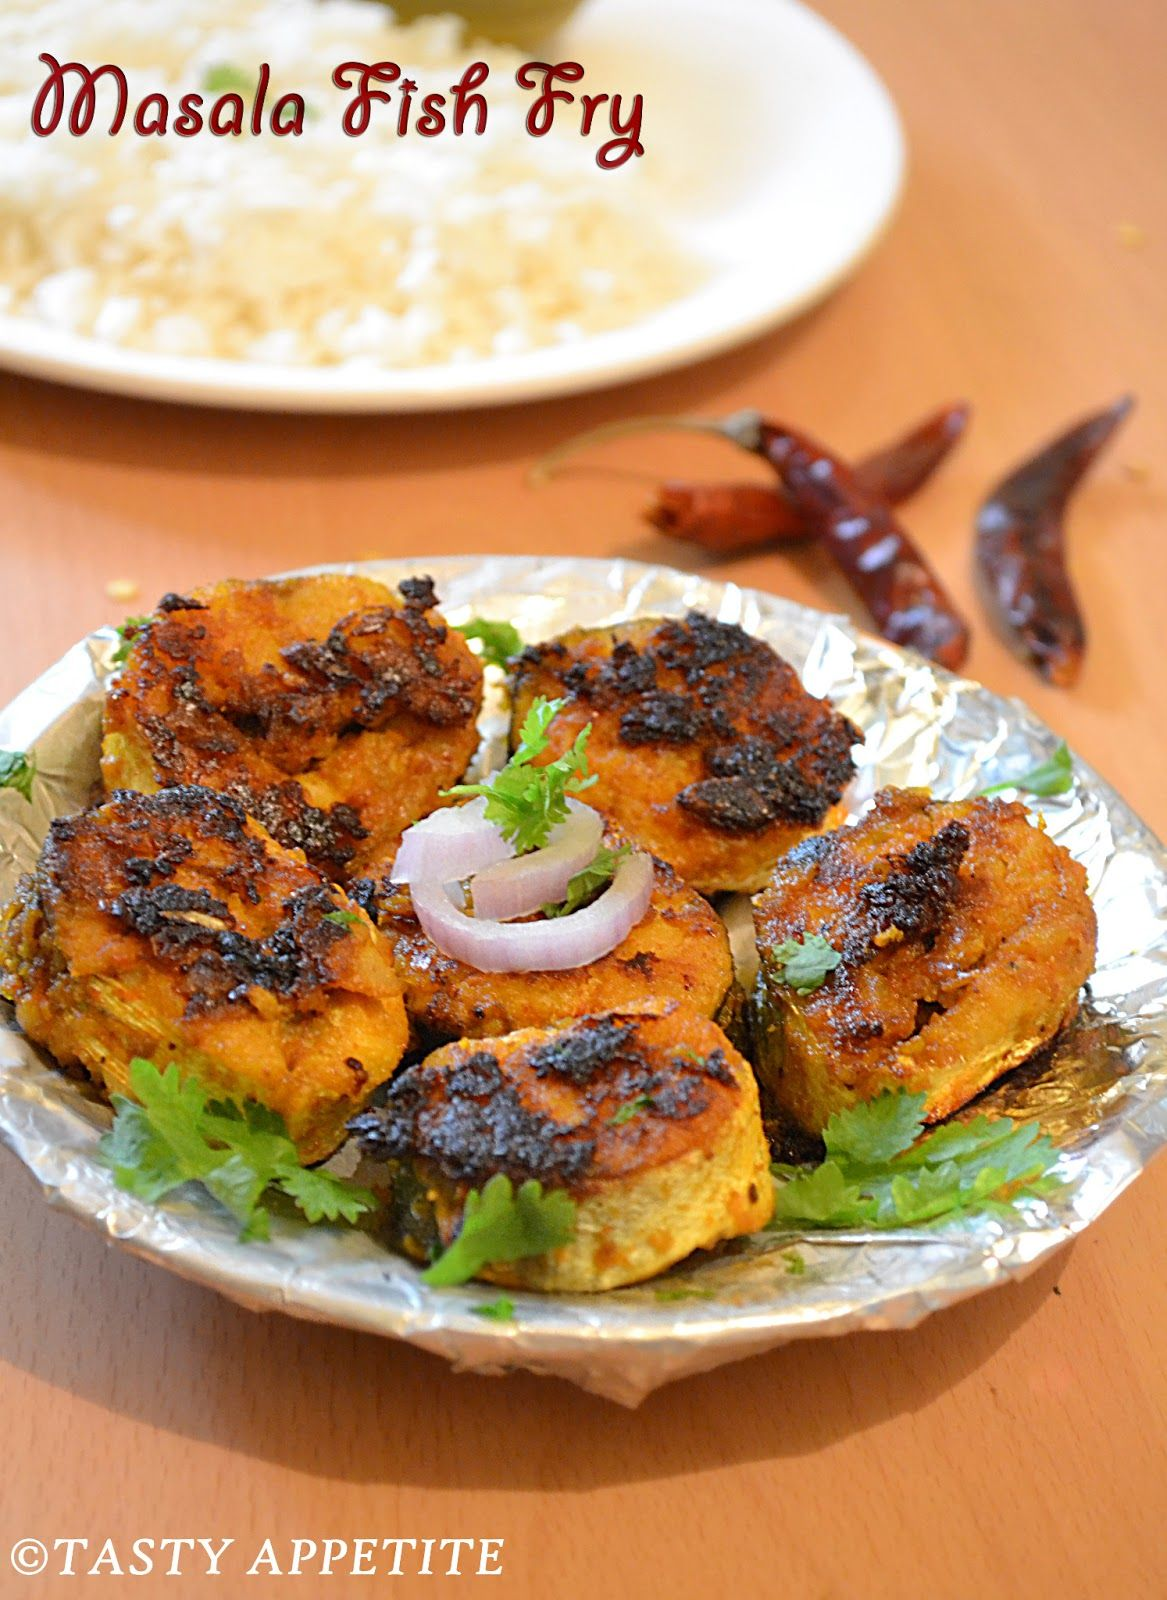 Tasty appetite how to make masala fish fry south indian fish fry tasty appetite how to make masala fish fry south indian fish fry recipe forumfinder Gallery